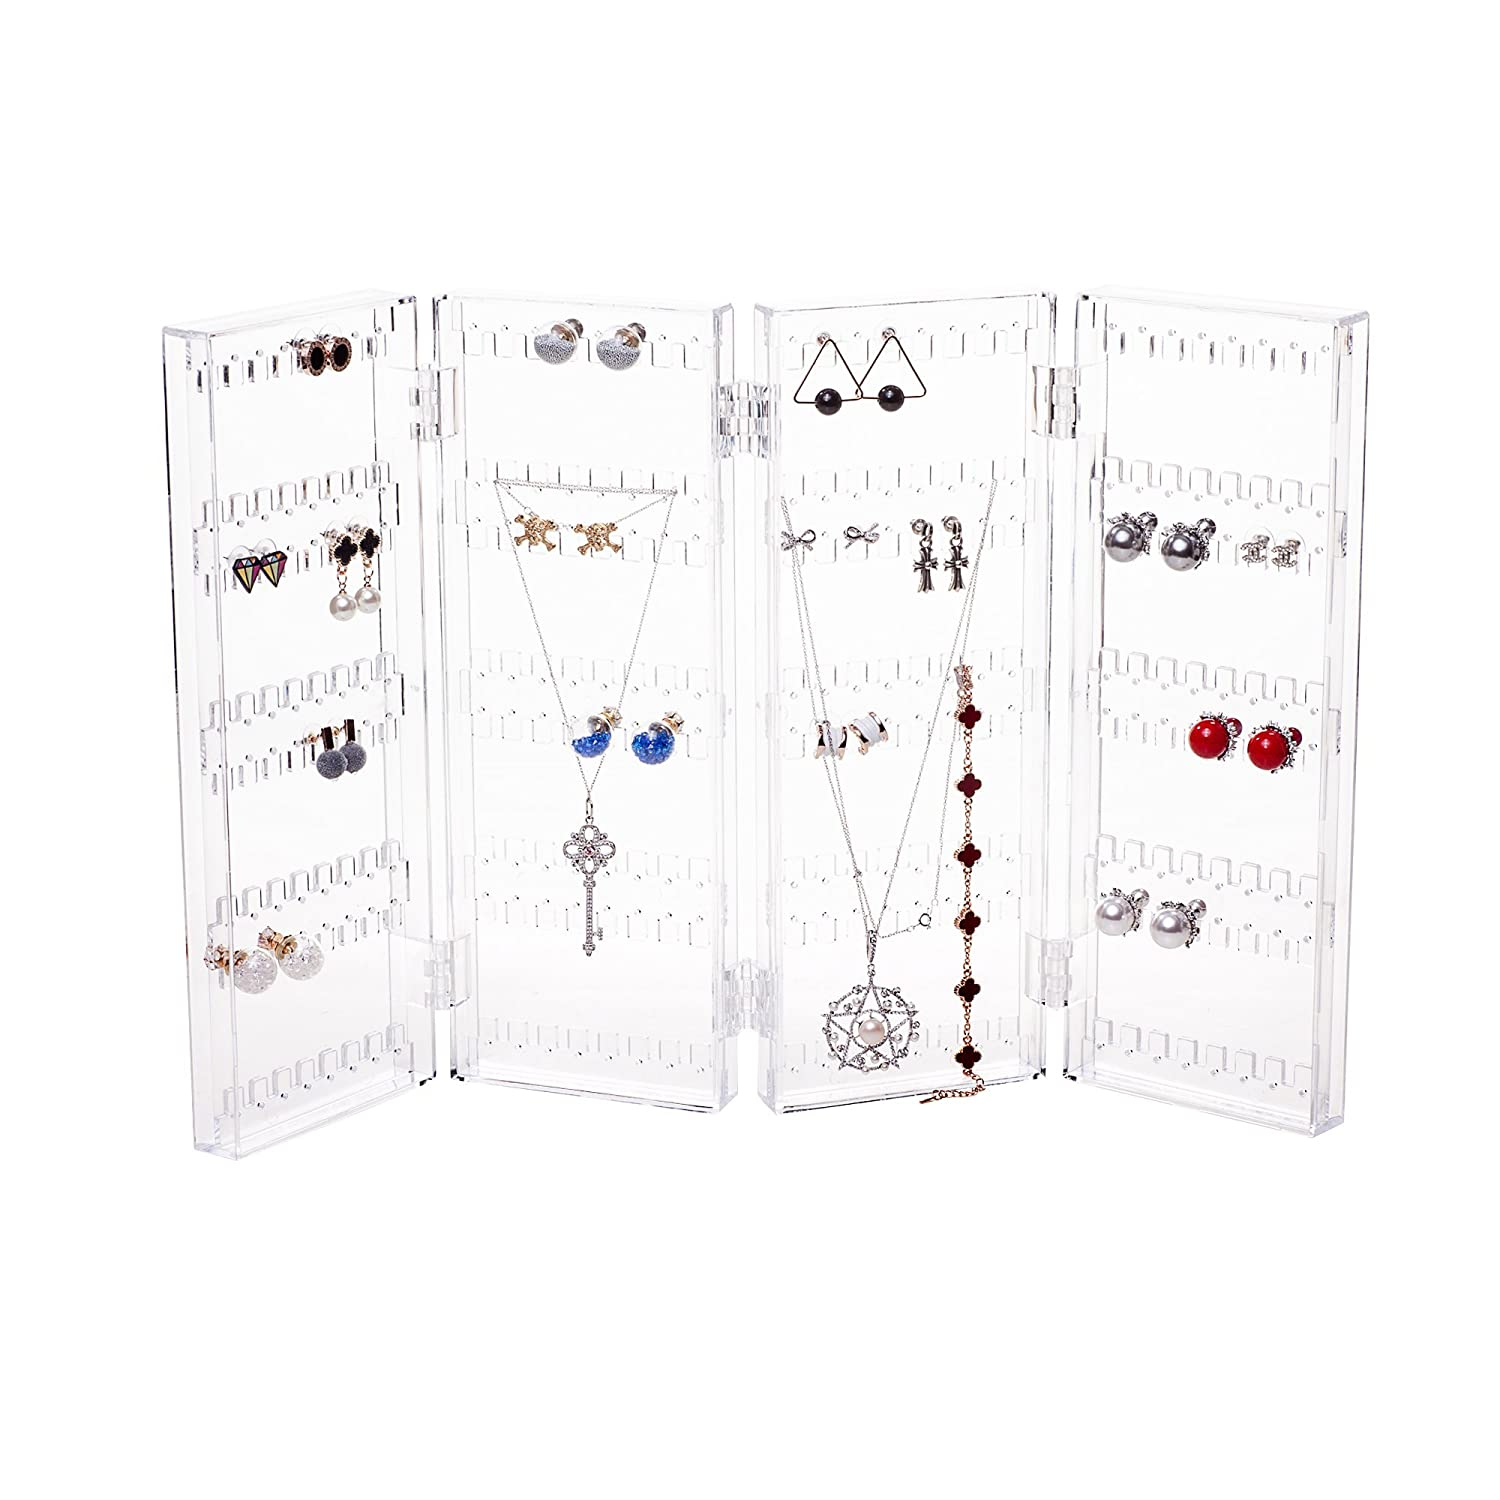 Foldable 4-Panel Jewelry Screen Hanger Organizer Earrings Necklace Chains Display Stands Choice Fun Transparent QFJJSN-WX-81003